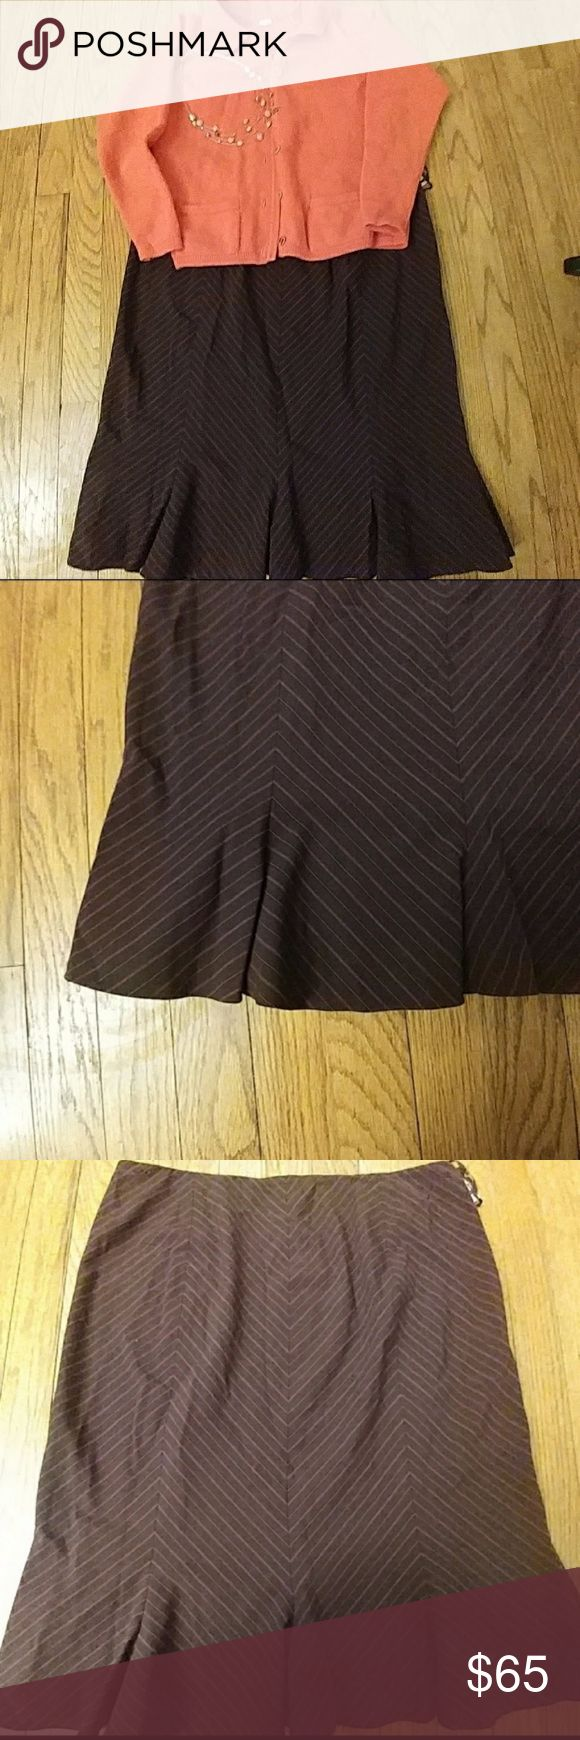 """NWT Nine West aubergine/purple trumpet skirt NEW WITH TAGS aubergine/purple/magenta diagonal pinstripe trumpet skirt from Nine West. Trumpet pleats at the bottom add an adorable little """"kick"""" when moving! In excellent condition. Nine West Skirts"""